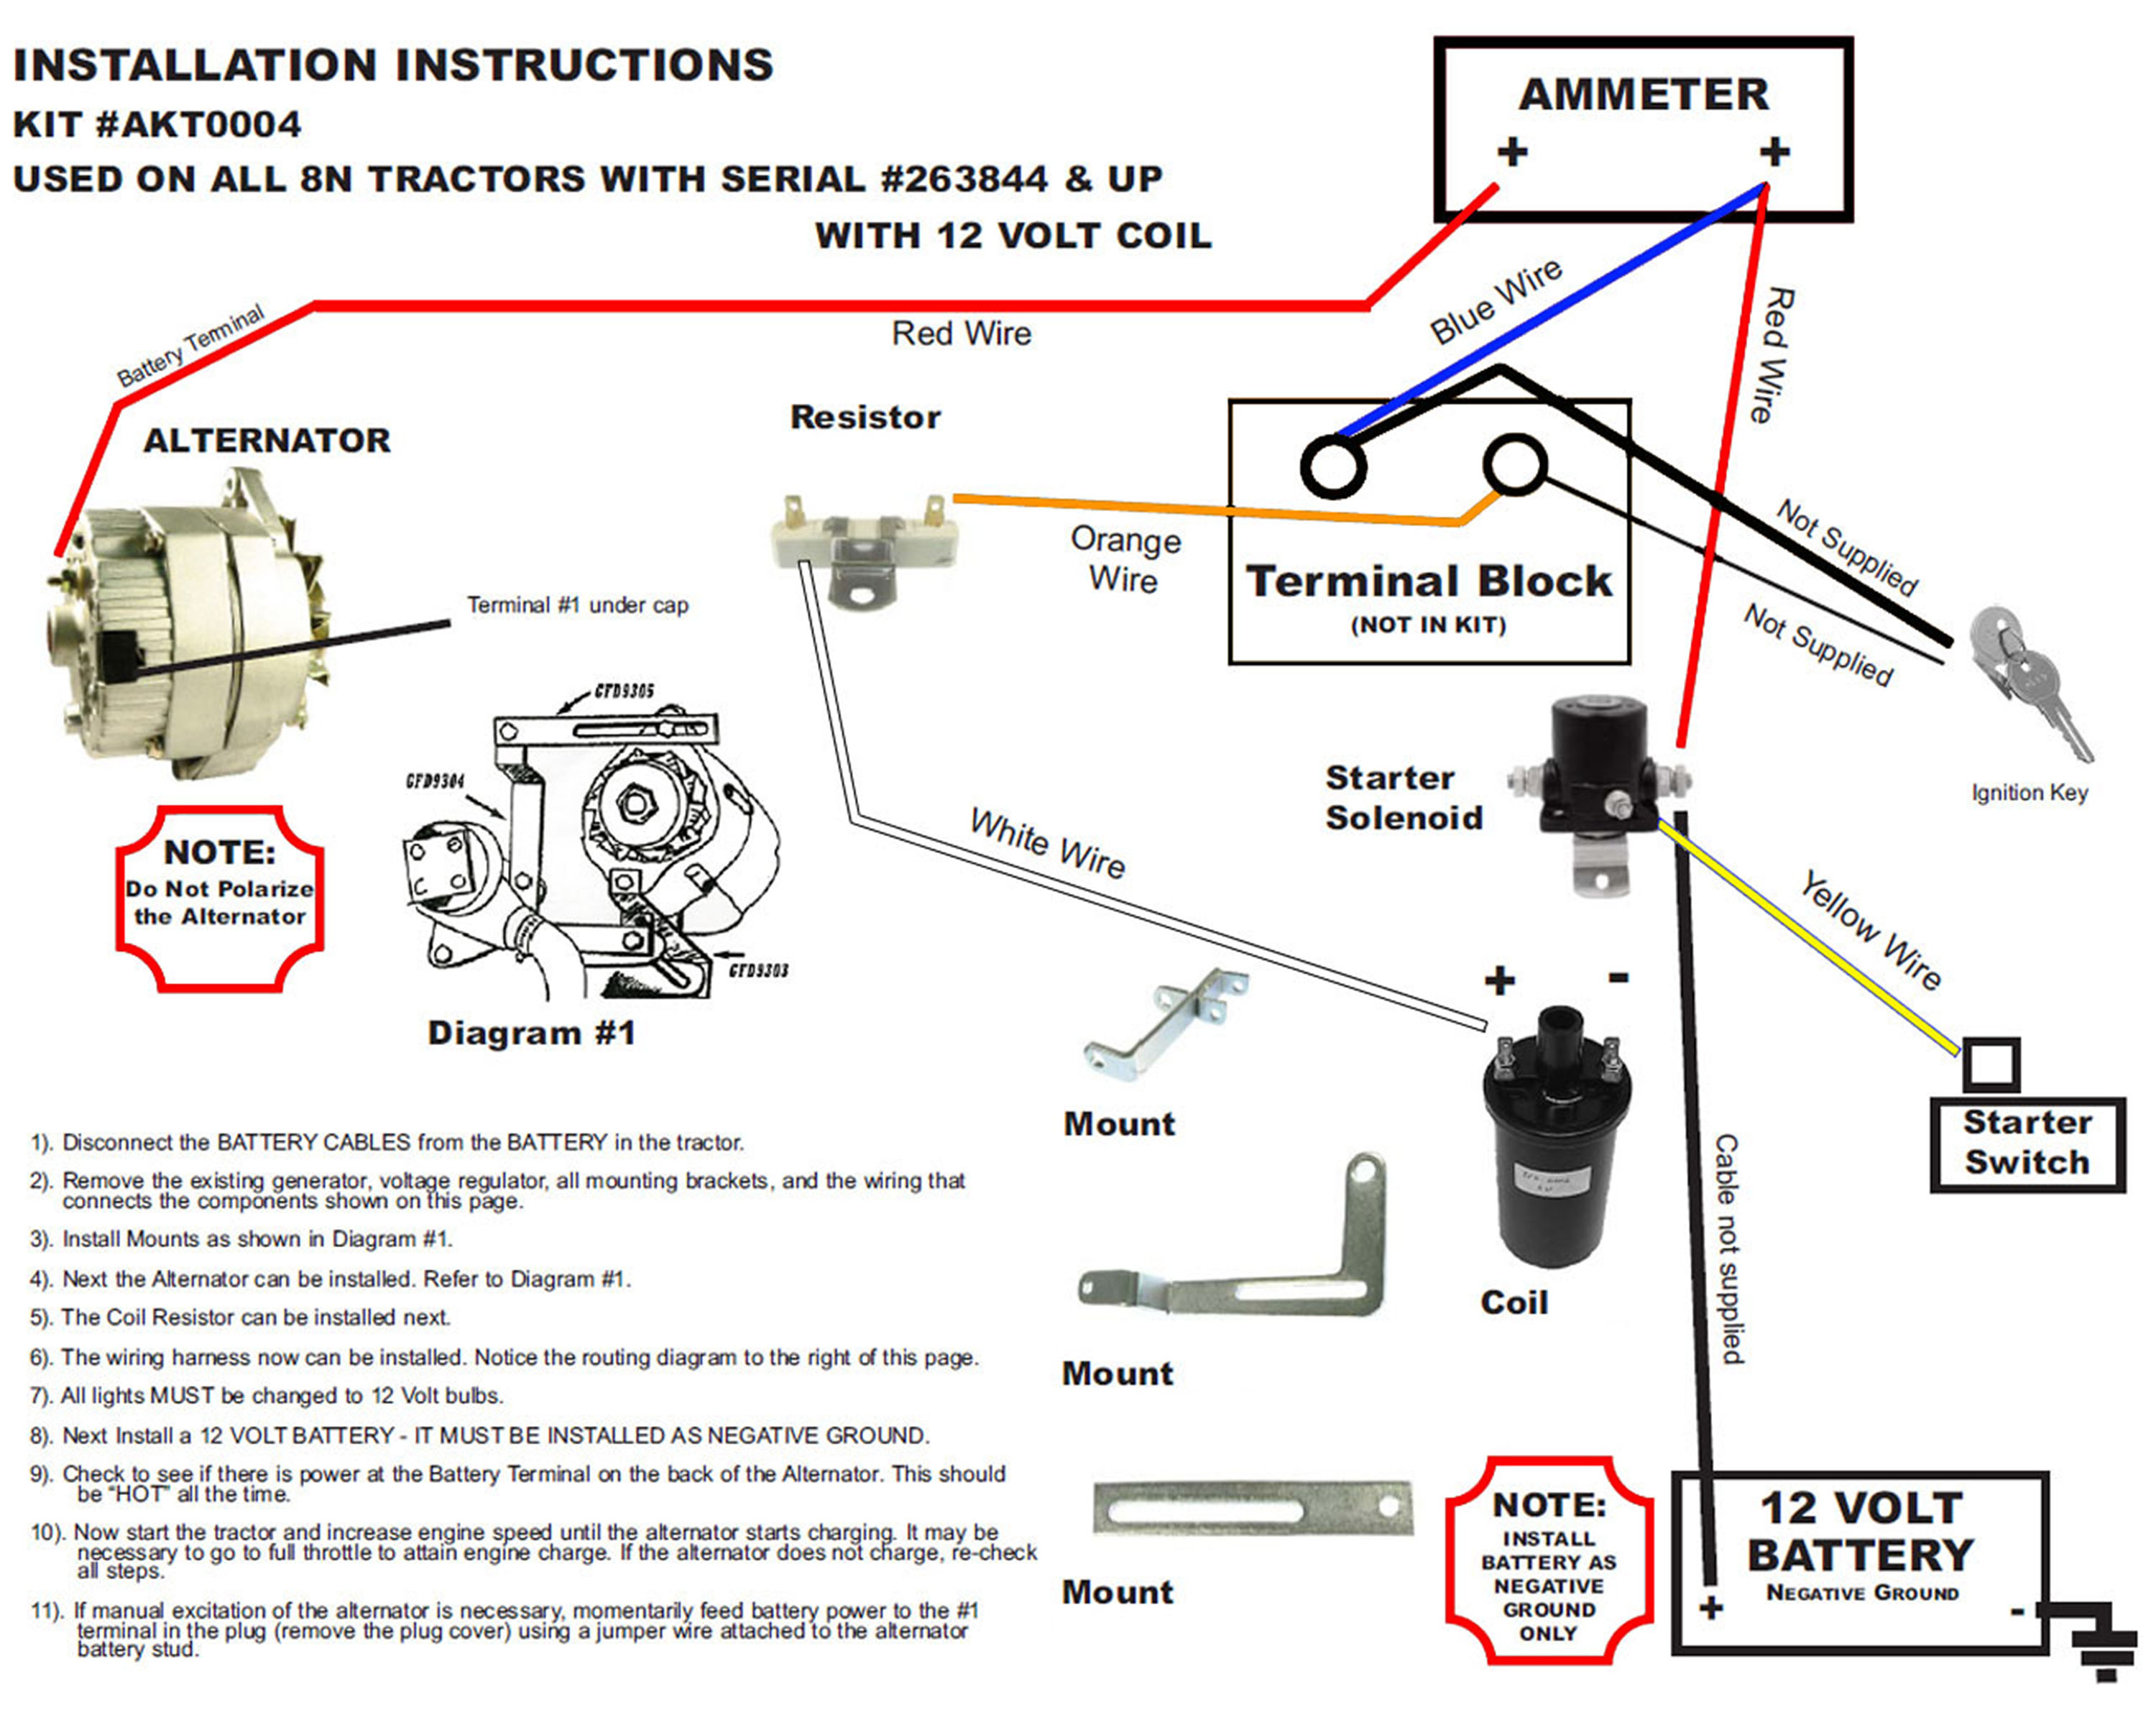 8n Wiring Diagram : New generator alternator fits conversion kit late model